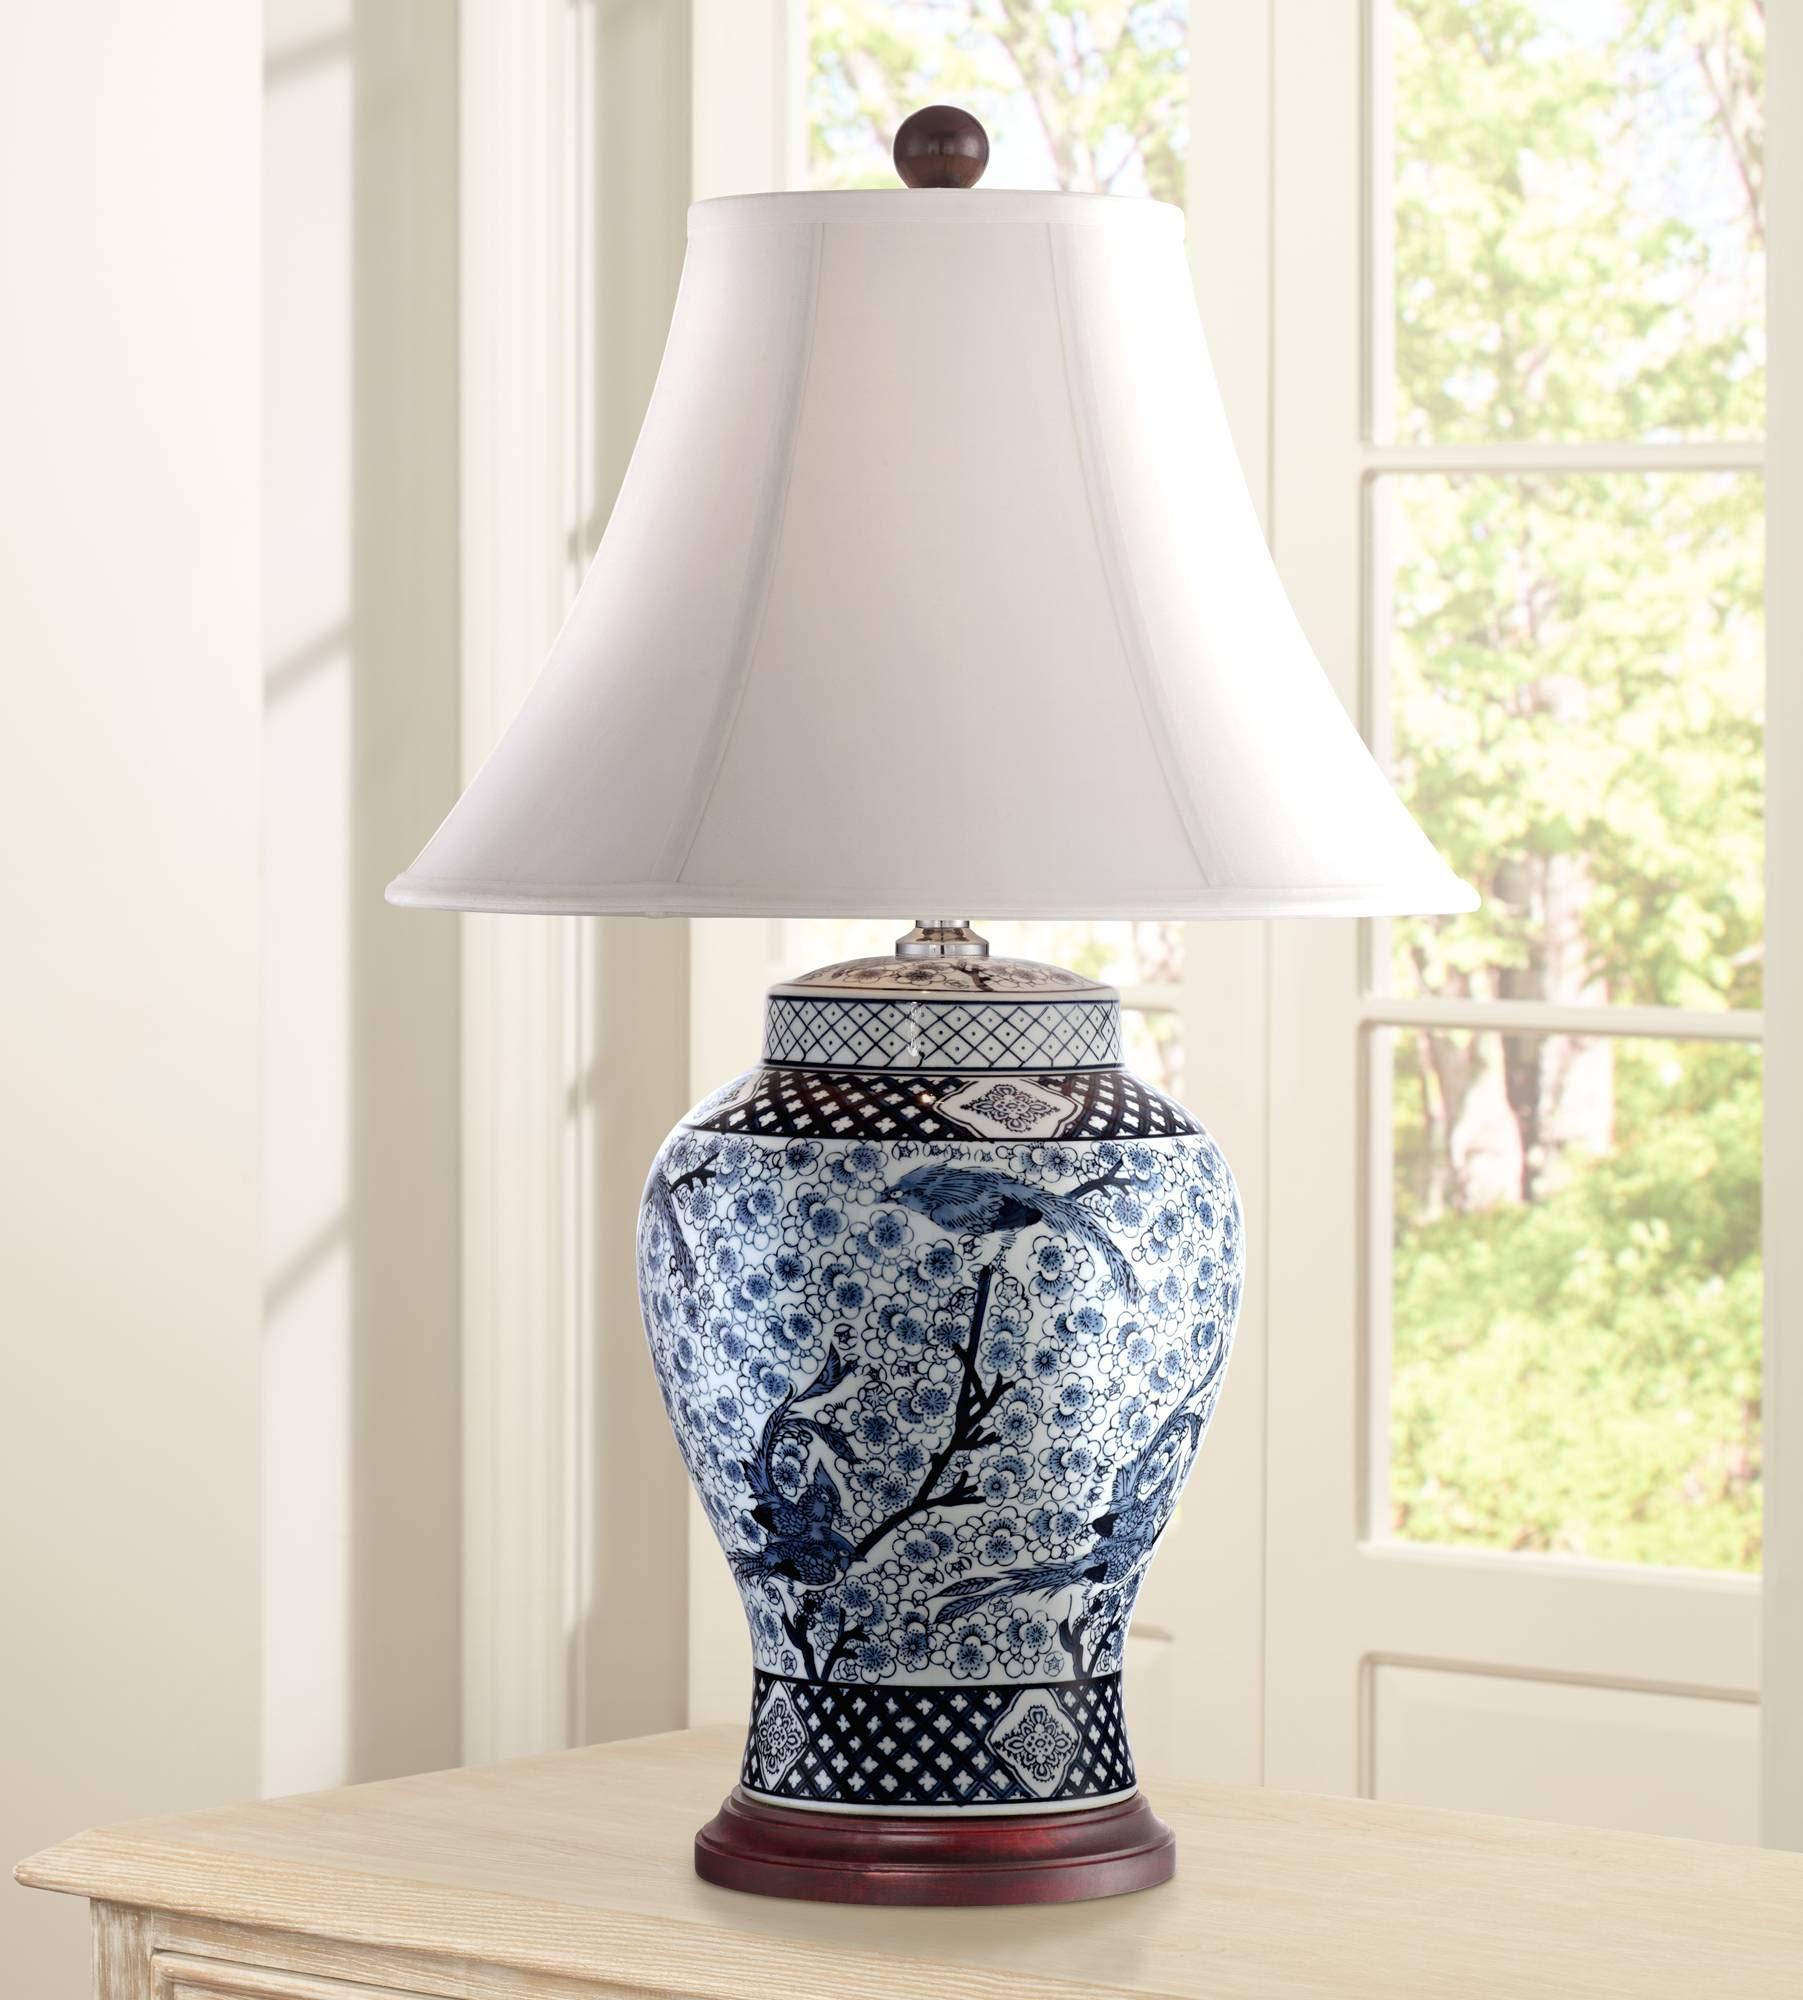 Shonna Traditional Table Lamp Porcelain Blue And White Bird And Branch Jar White Bell Shade For Living Room Family Bedroom Barnes And Ivy